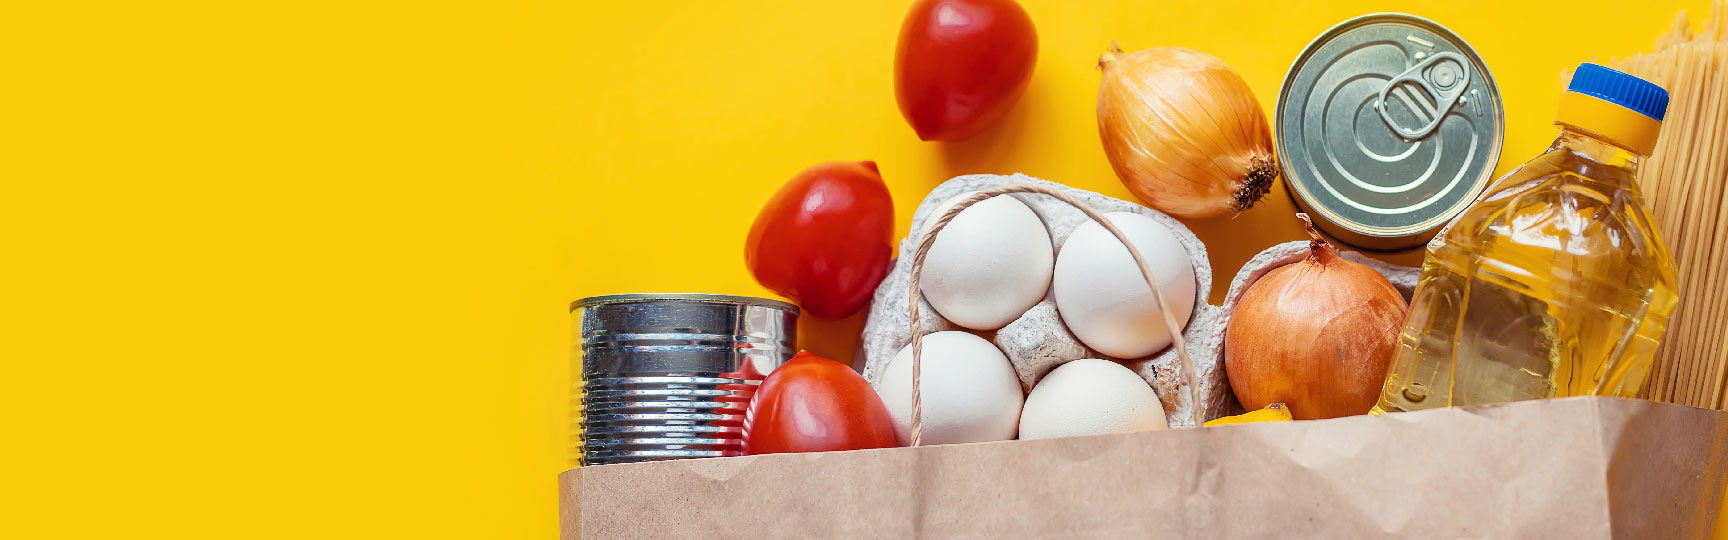 Rise Against Hunger With Strategy